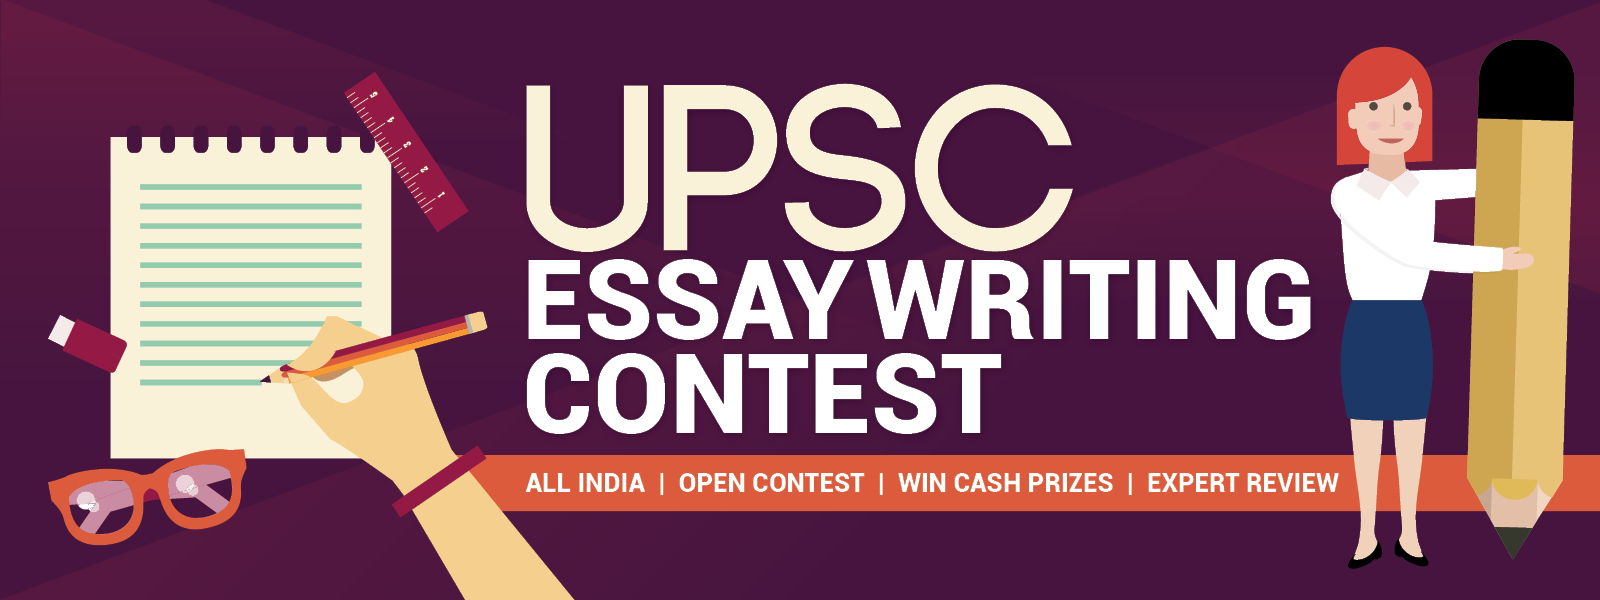 Paper writing for college competition 2017 india